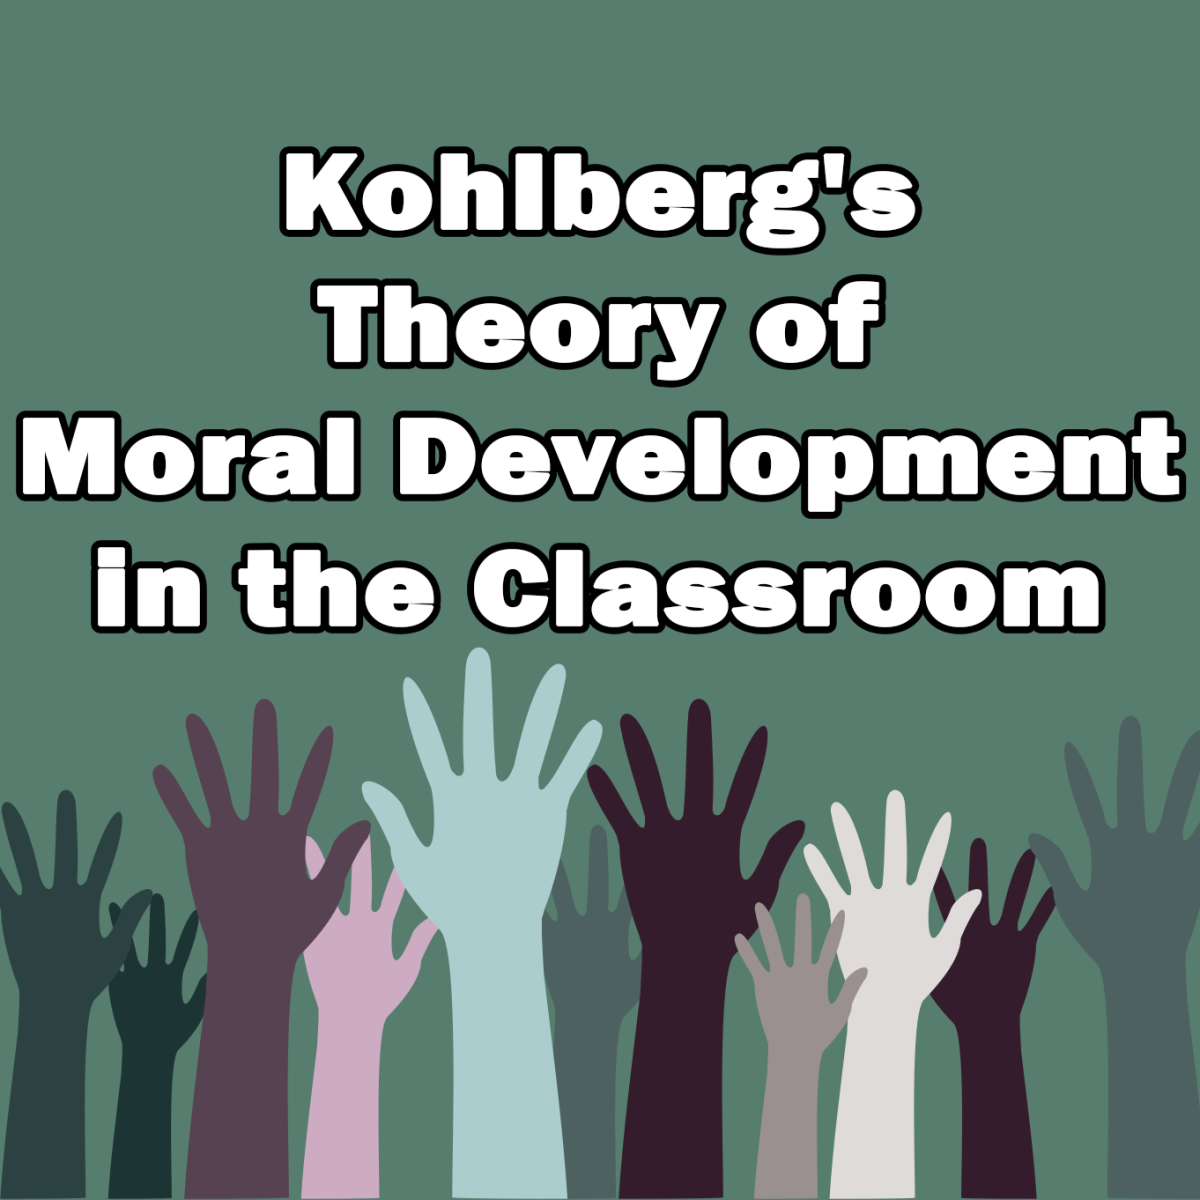 How to Apply Kohlberg's Theory of Moral Development in the Classroom as a Teacher